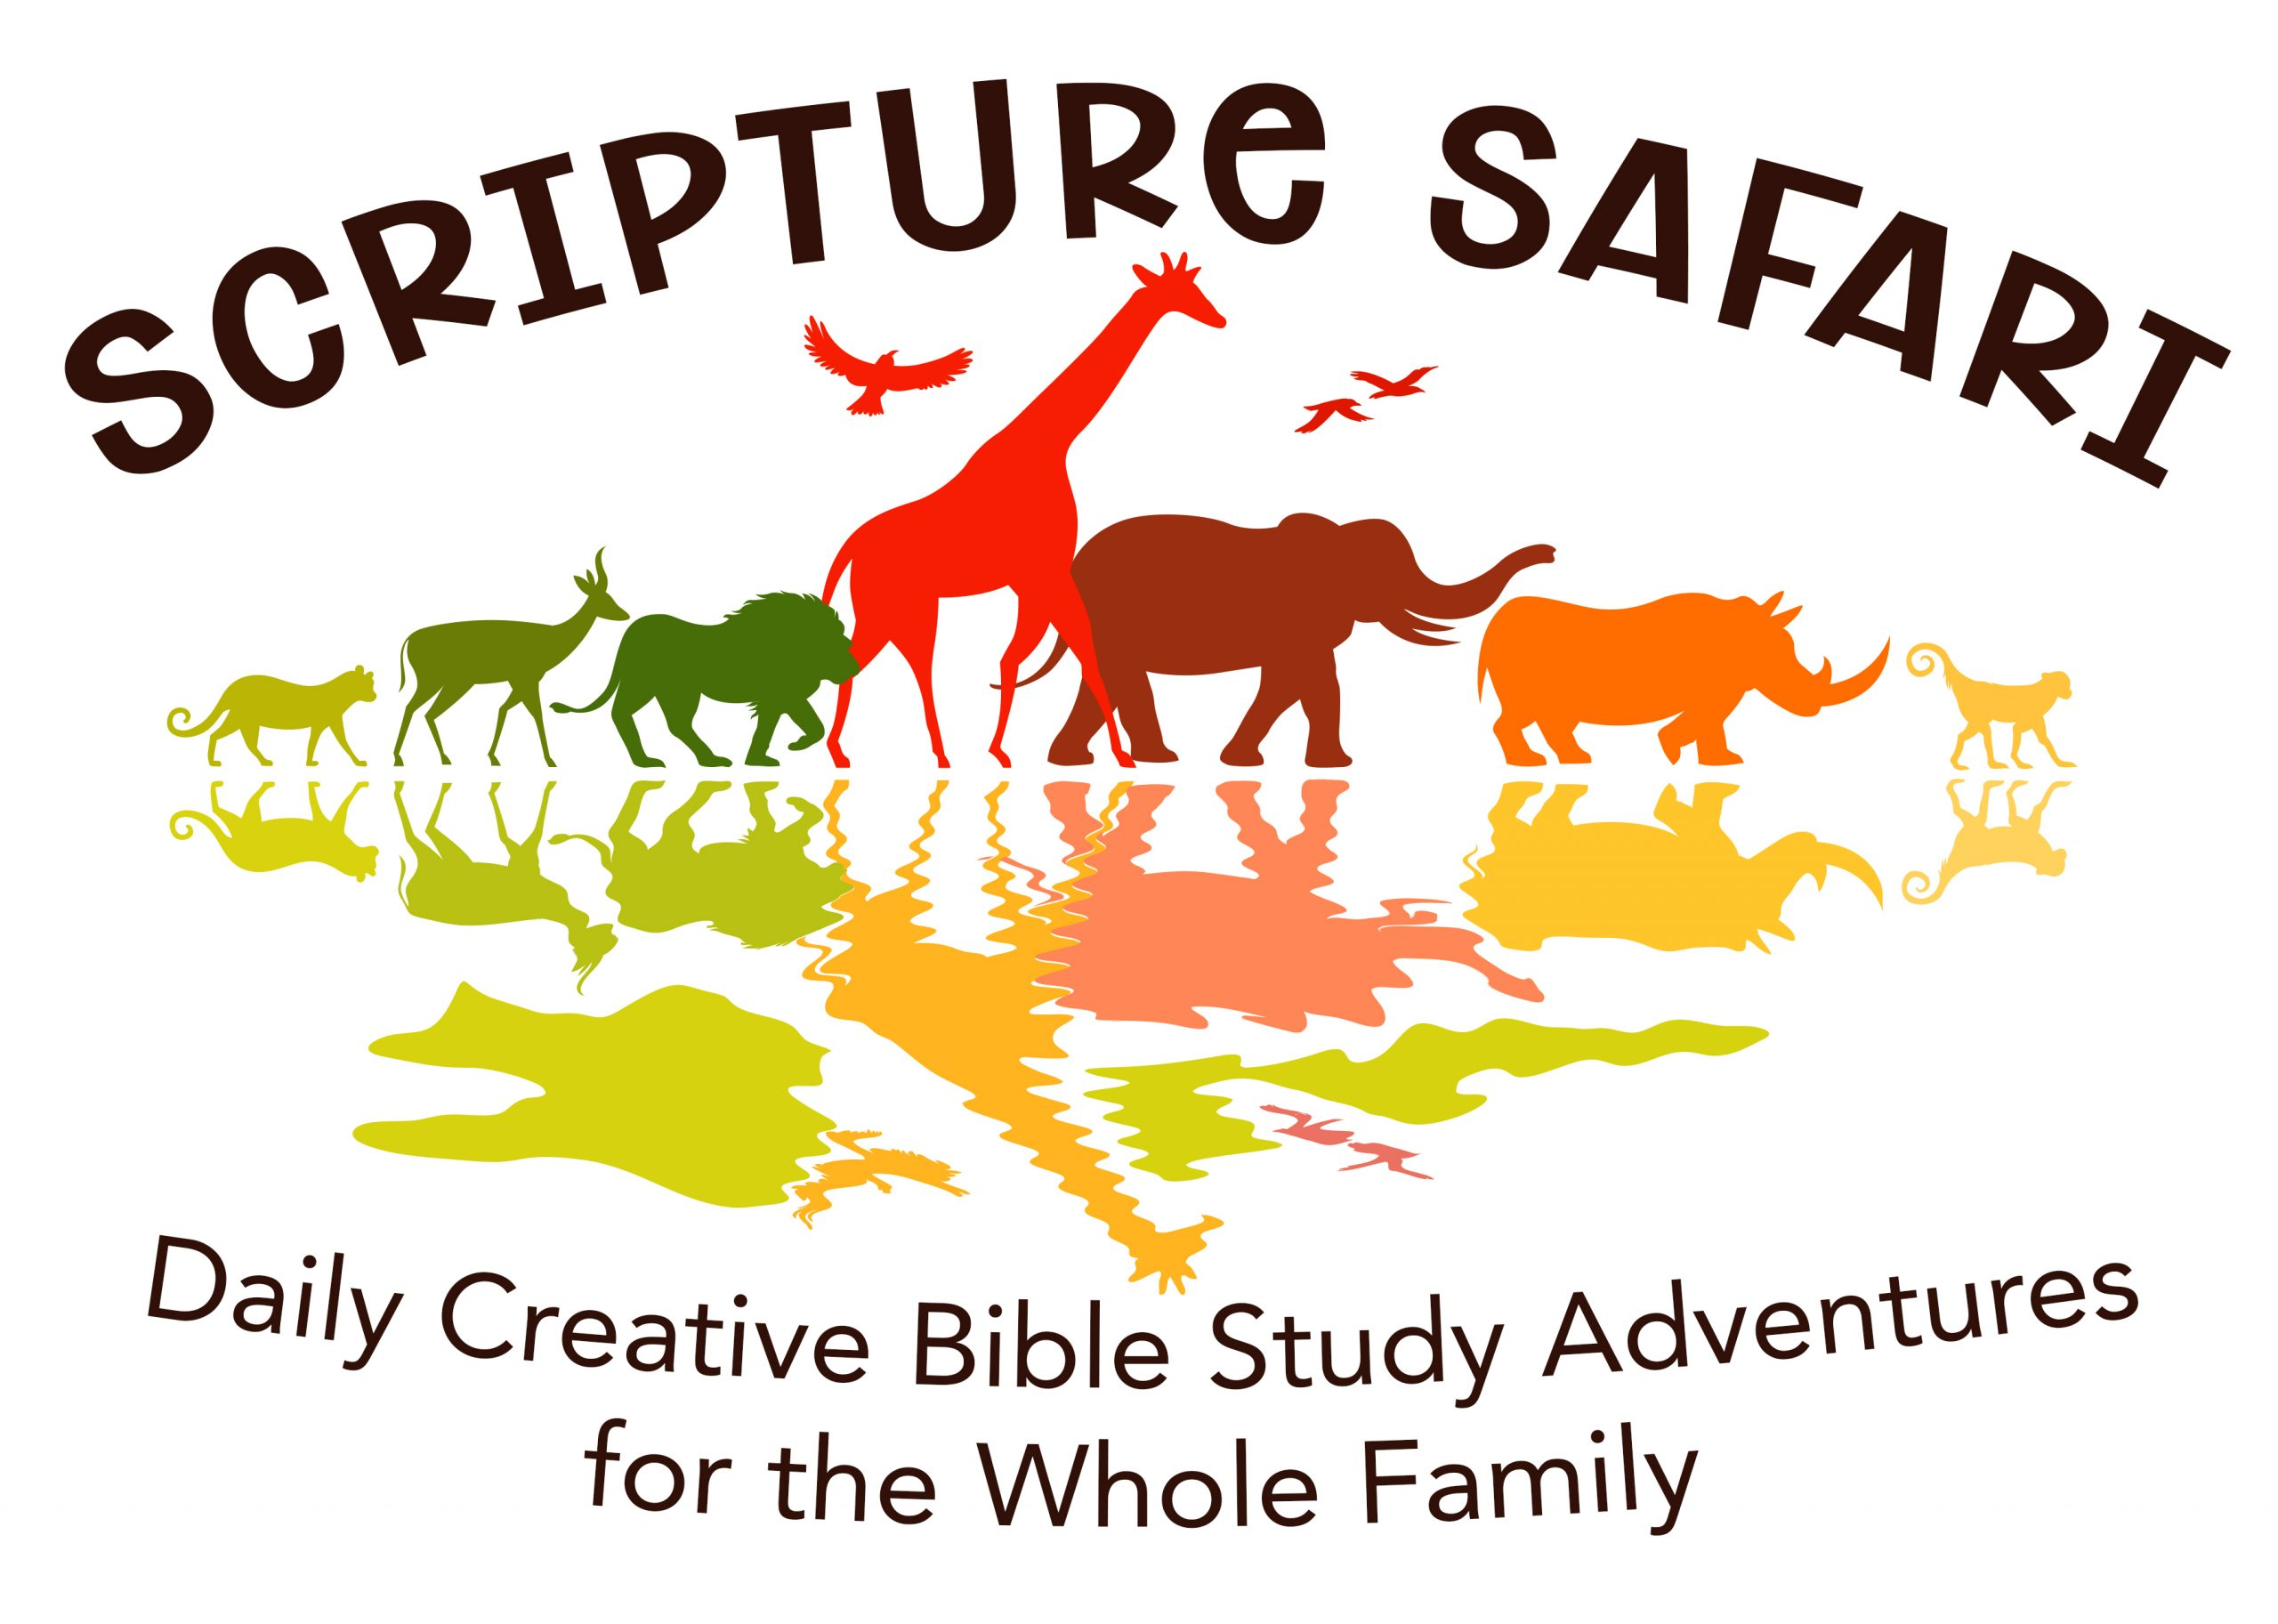 Scripture Safari: Creative Bible Study Adventures for the Whole Family